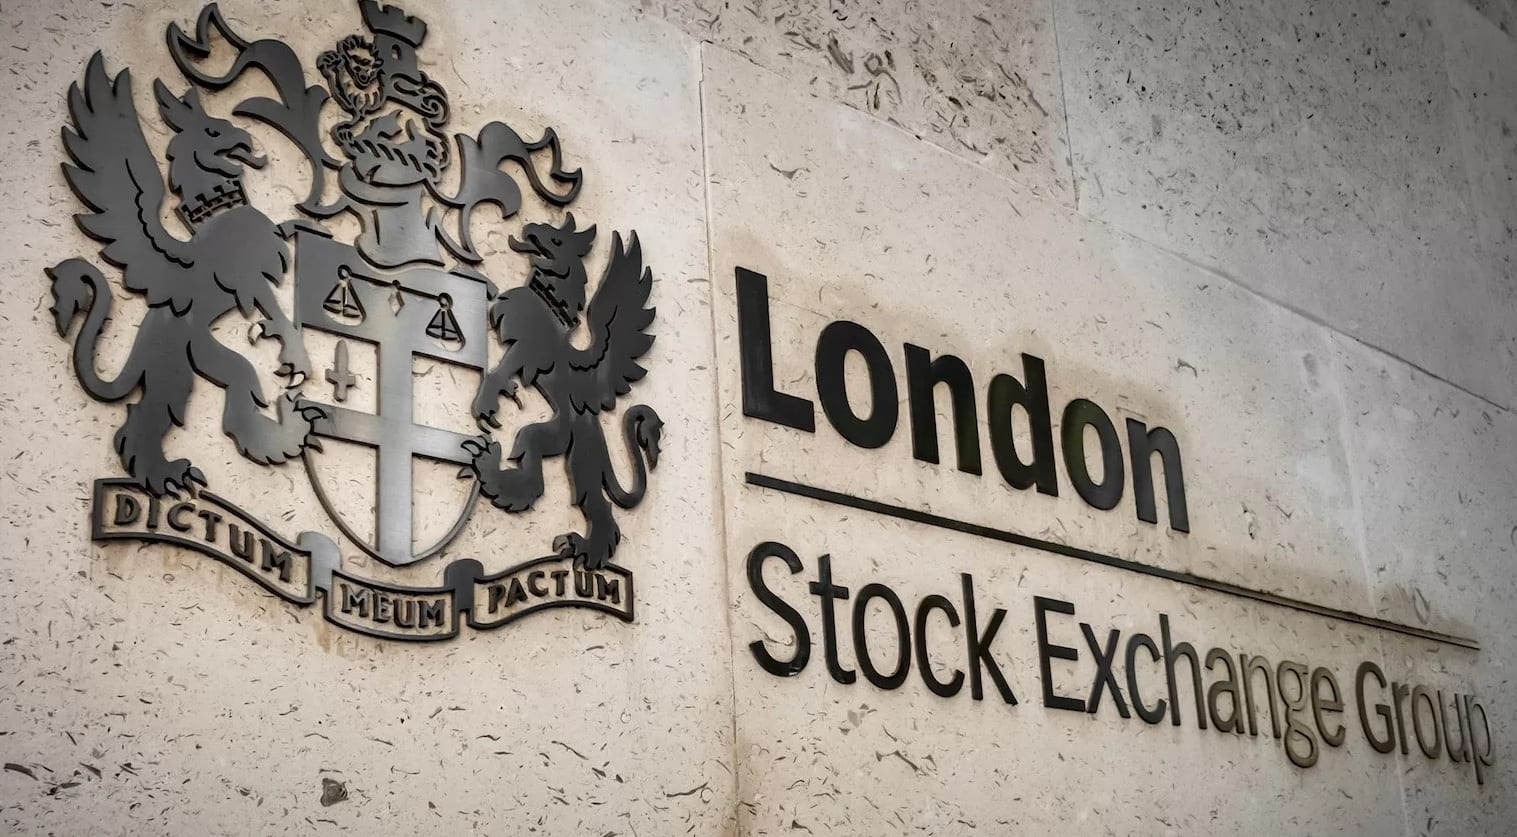 London Stock Exchange Group names David Schwimmer as new chief